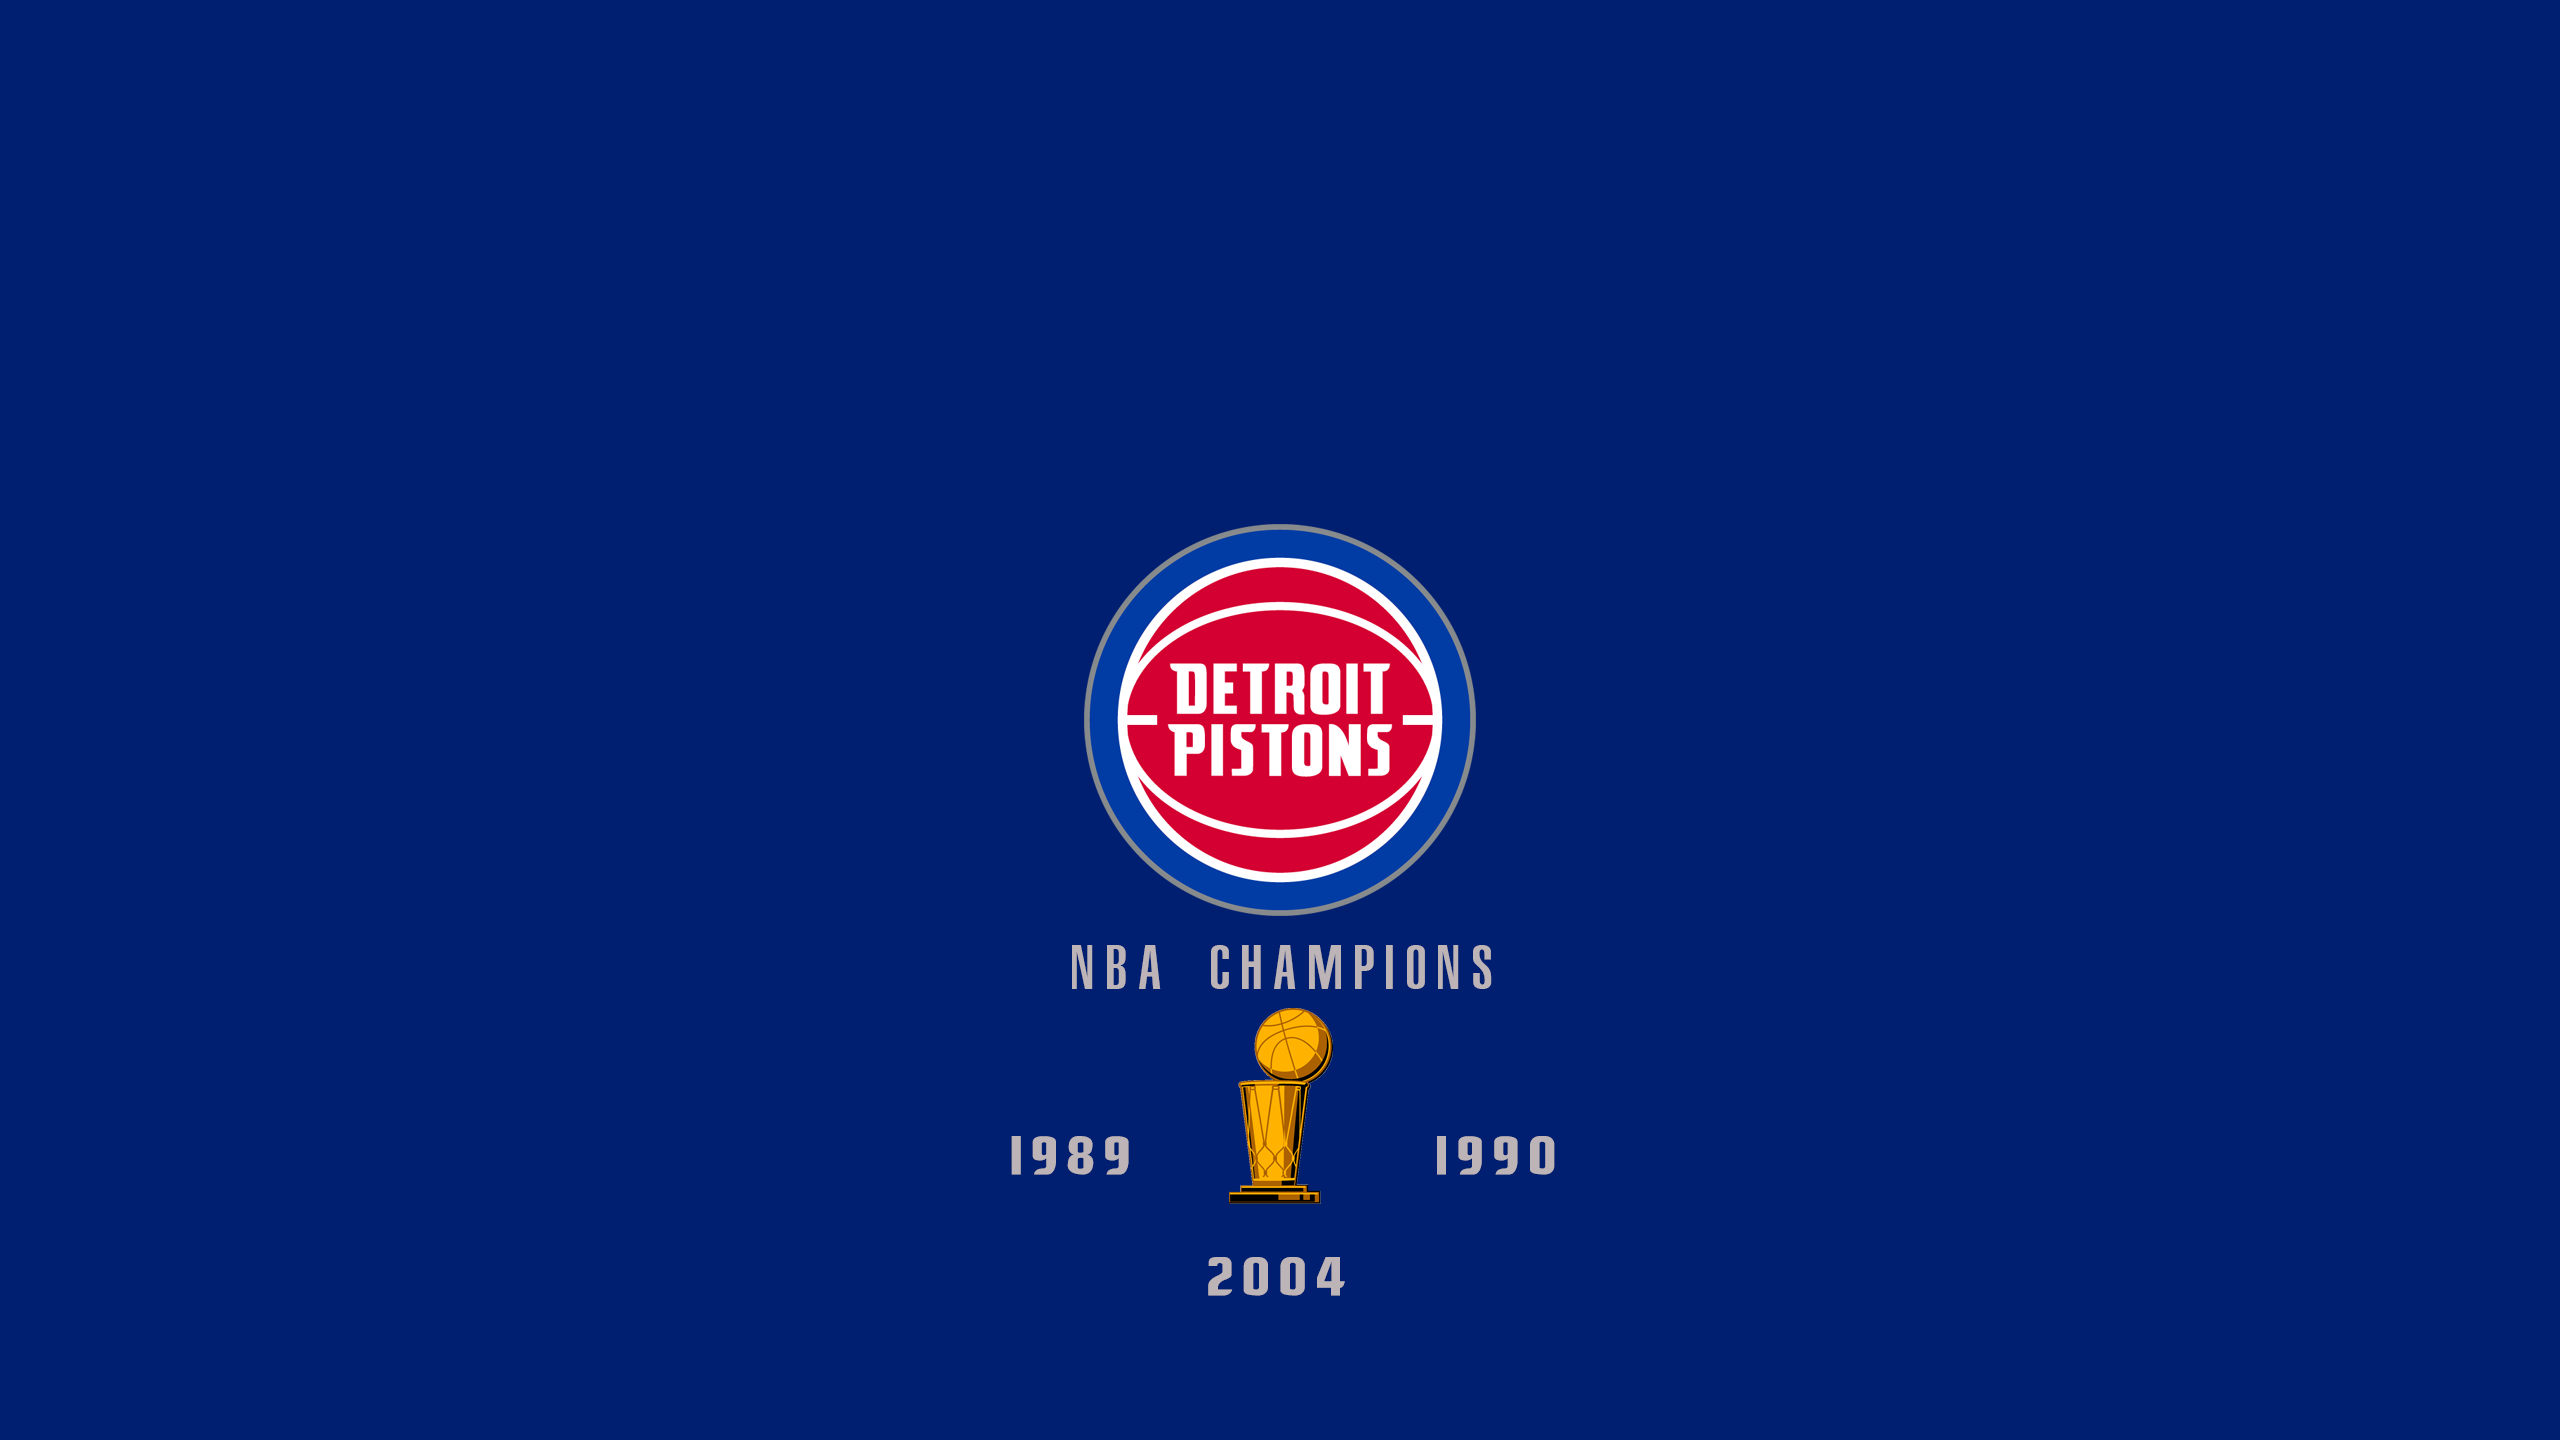 Detroit Pistons - NBA Champs